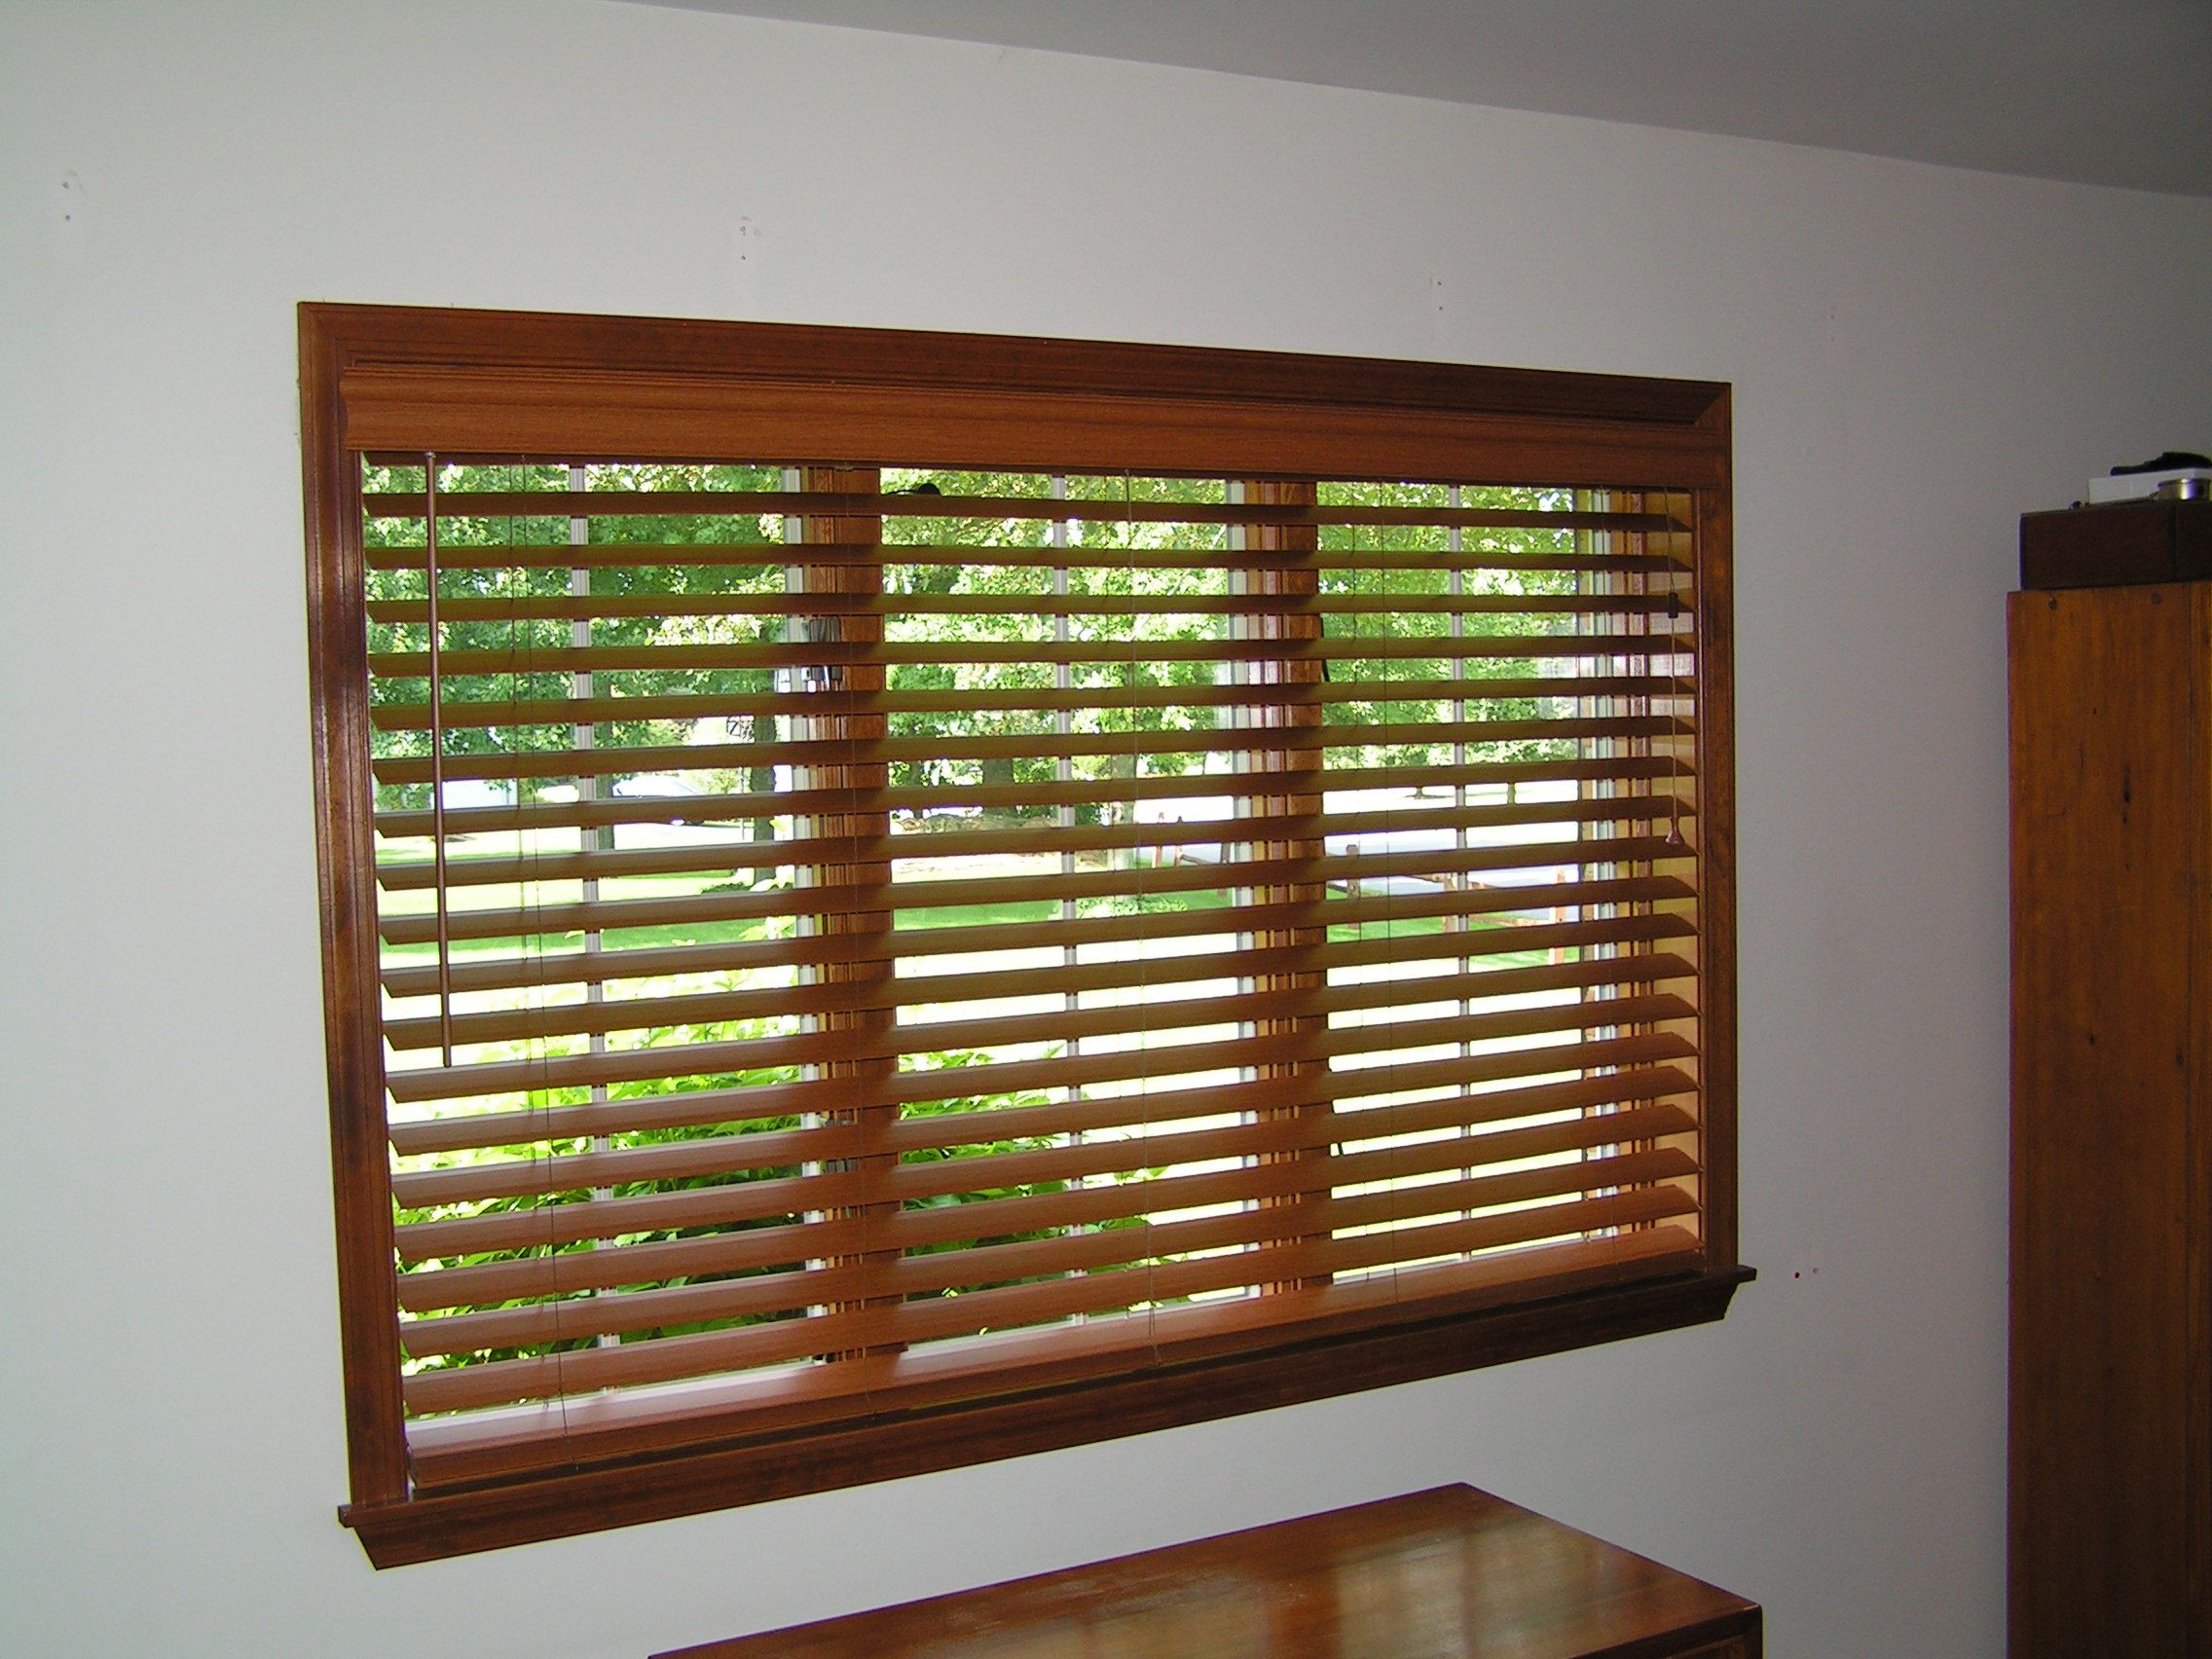 Horizontal blinds for large windows - Stained Wood Blinds On A Large Window Horizontal